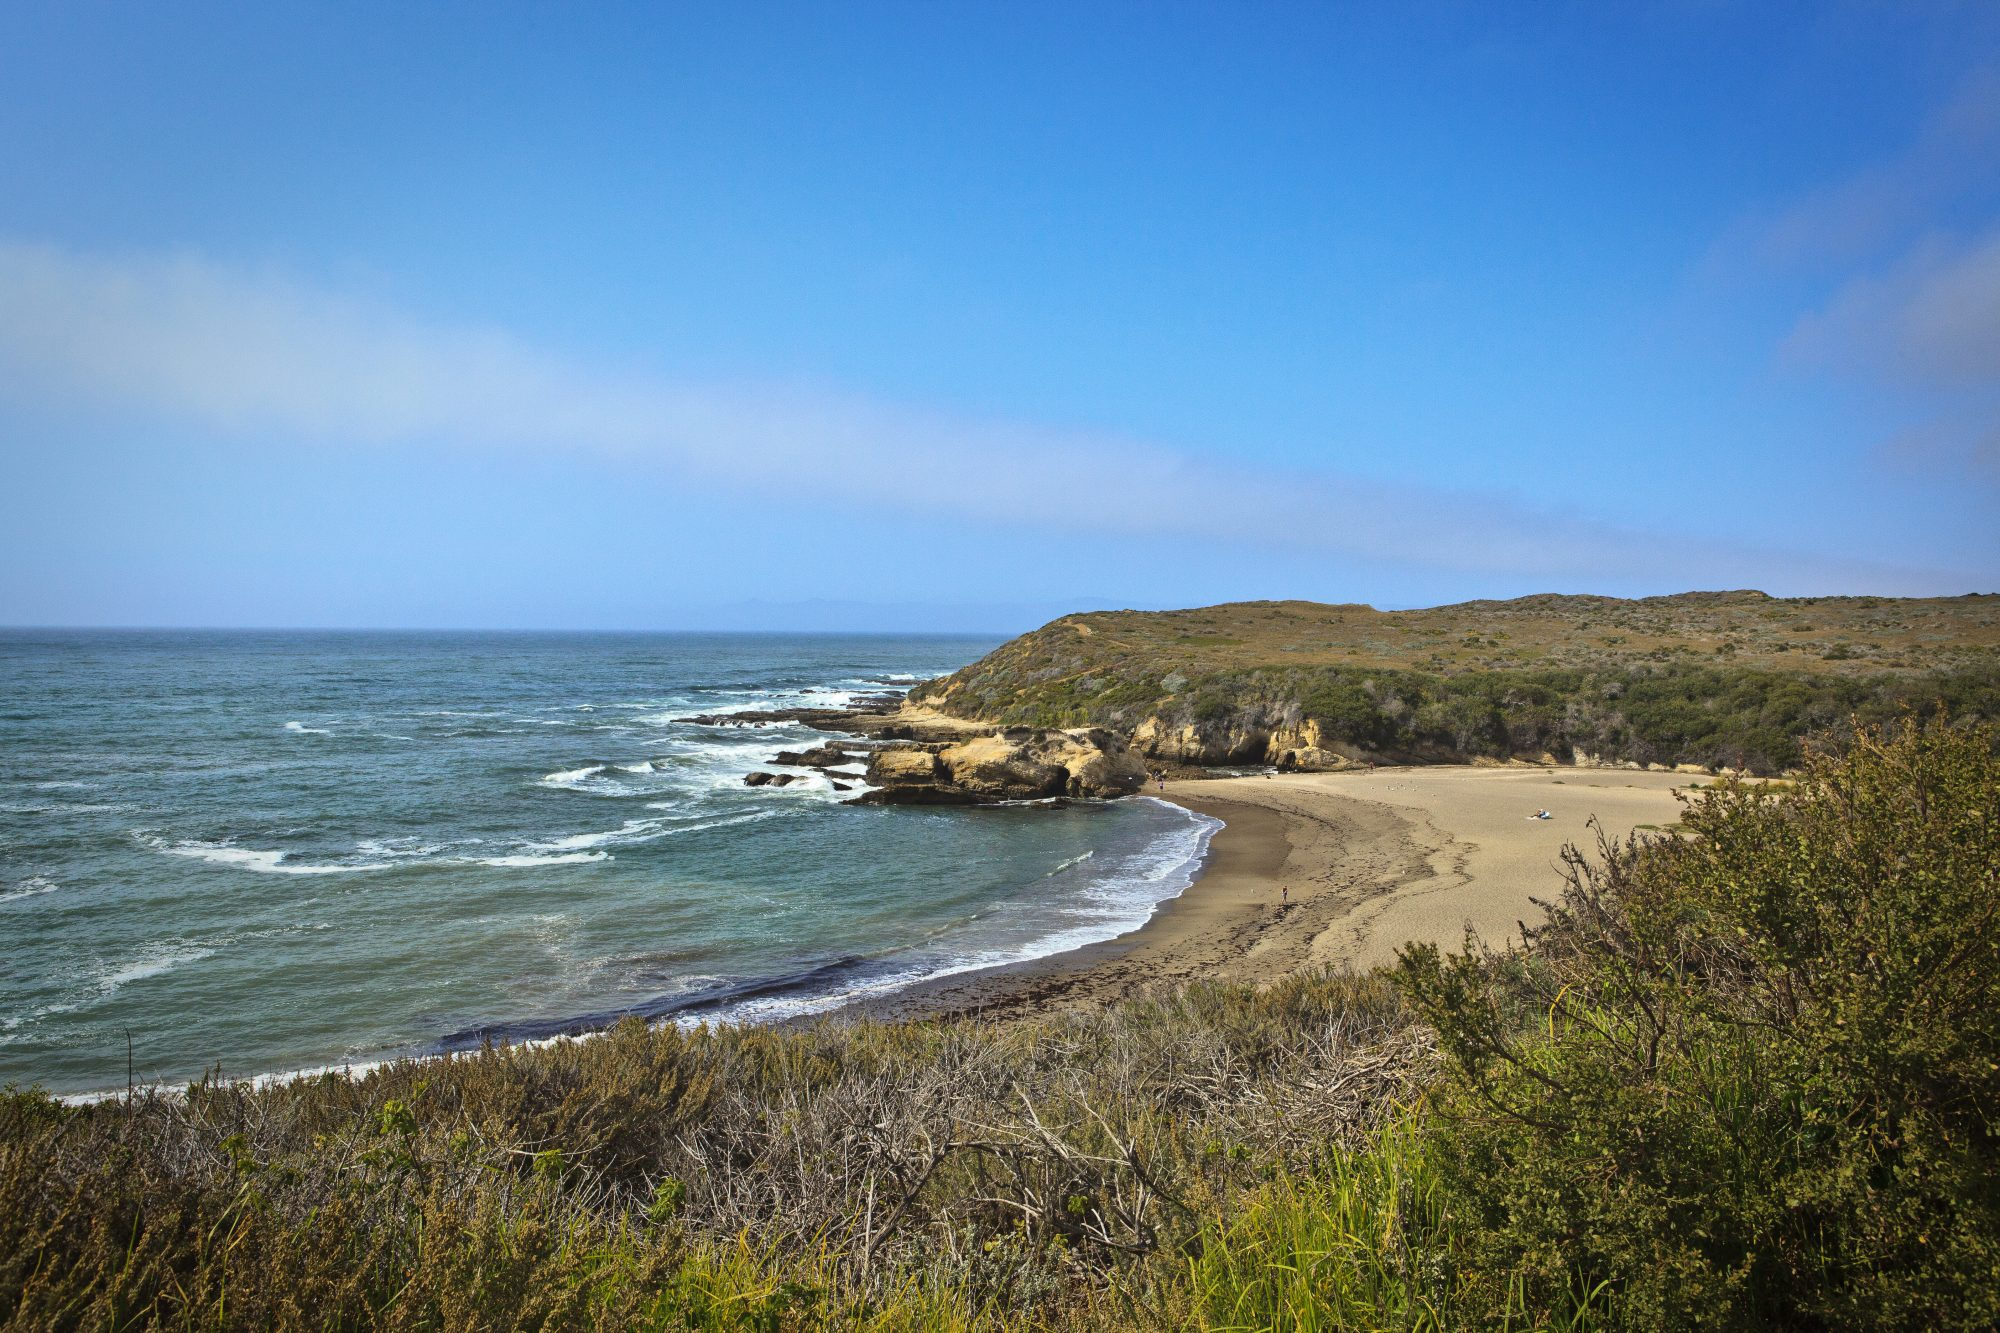 Wander among some of California's most stunning coastline at this often overlooked state park in San Luis Obispo County. Visitors find secluded coves, pounding surf, and sweeping bluff views along seven miles of shore. And now a new path from the state park's southern boundary leads to remote Coon Creek Beach.